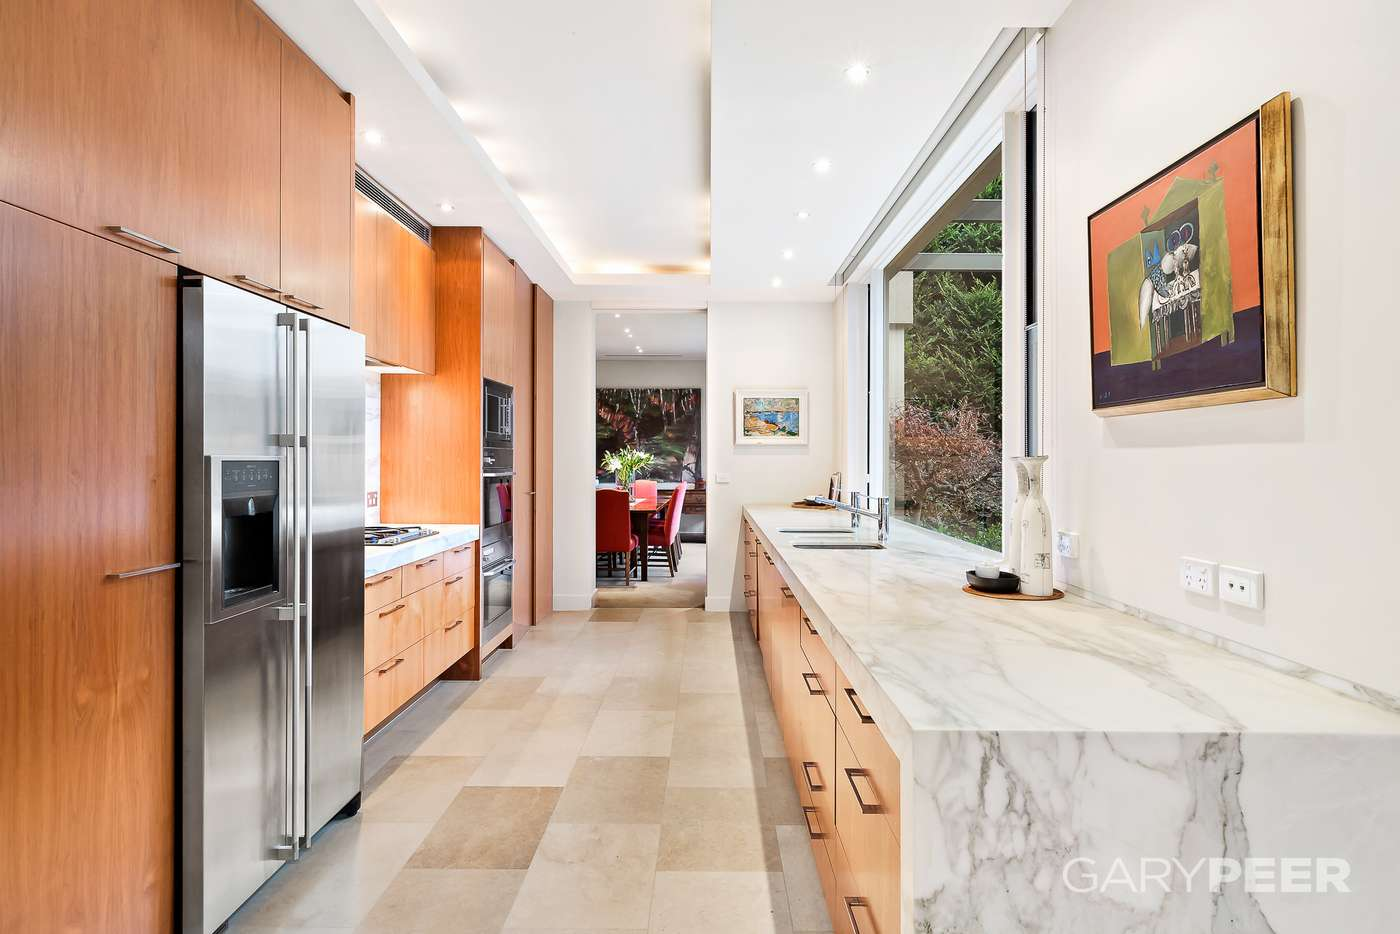 Sixth view of Homely house listing, 44 Aroona Road, Caulfield North VIC 3161